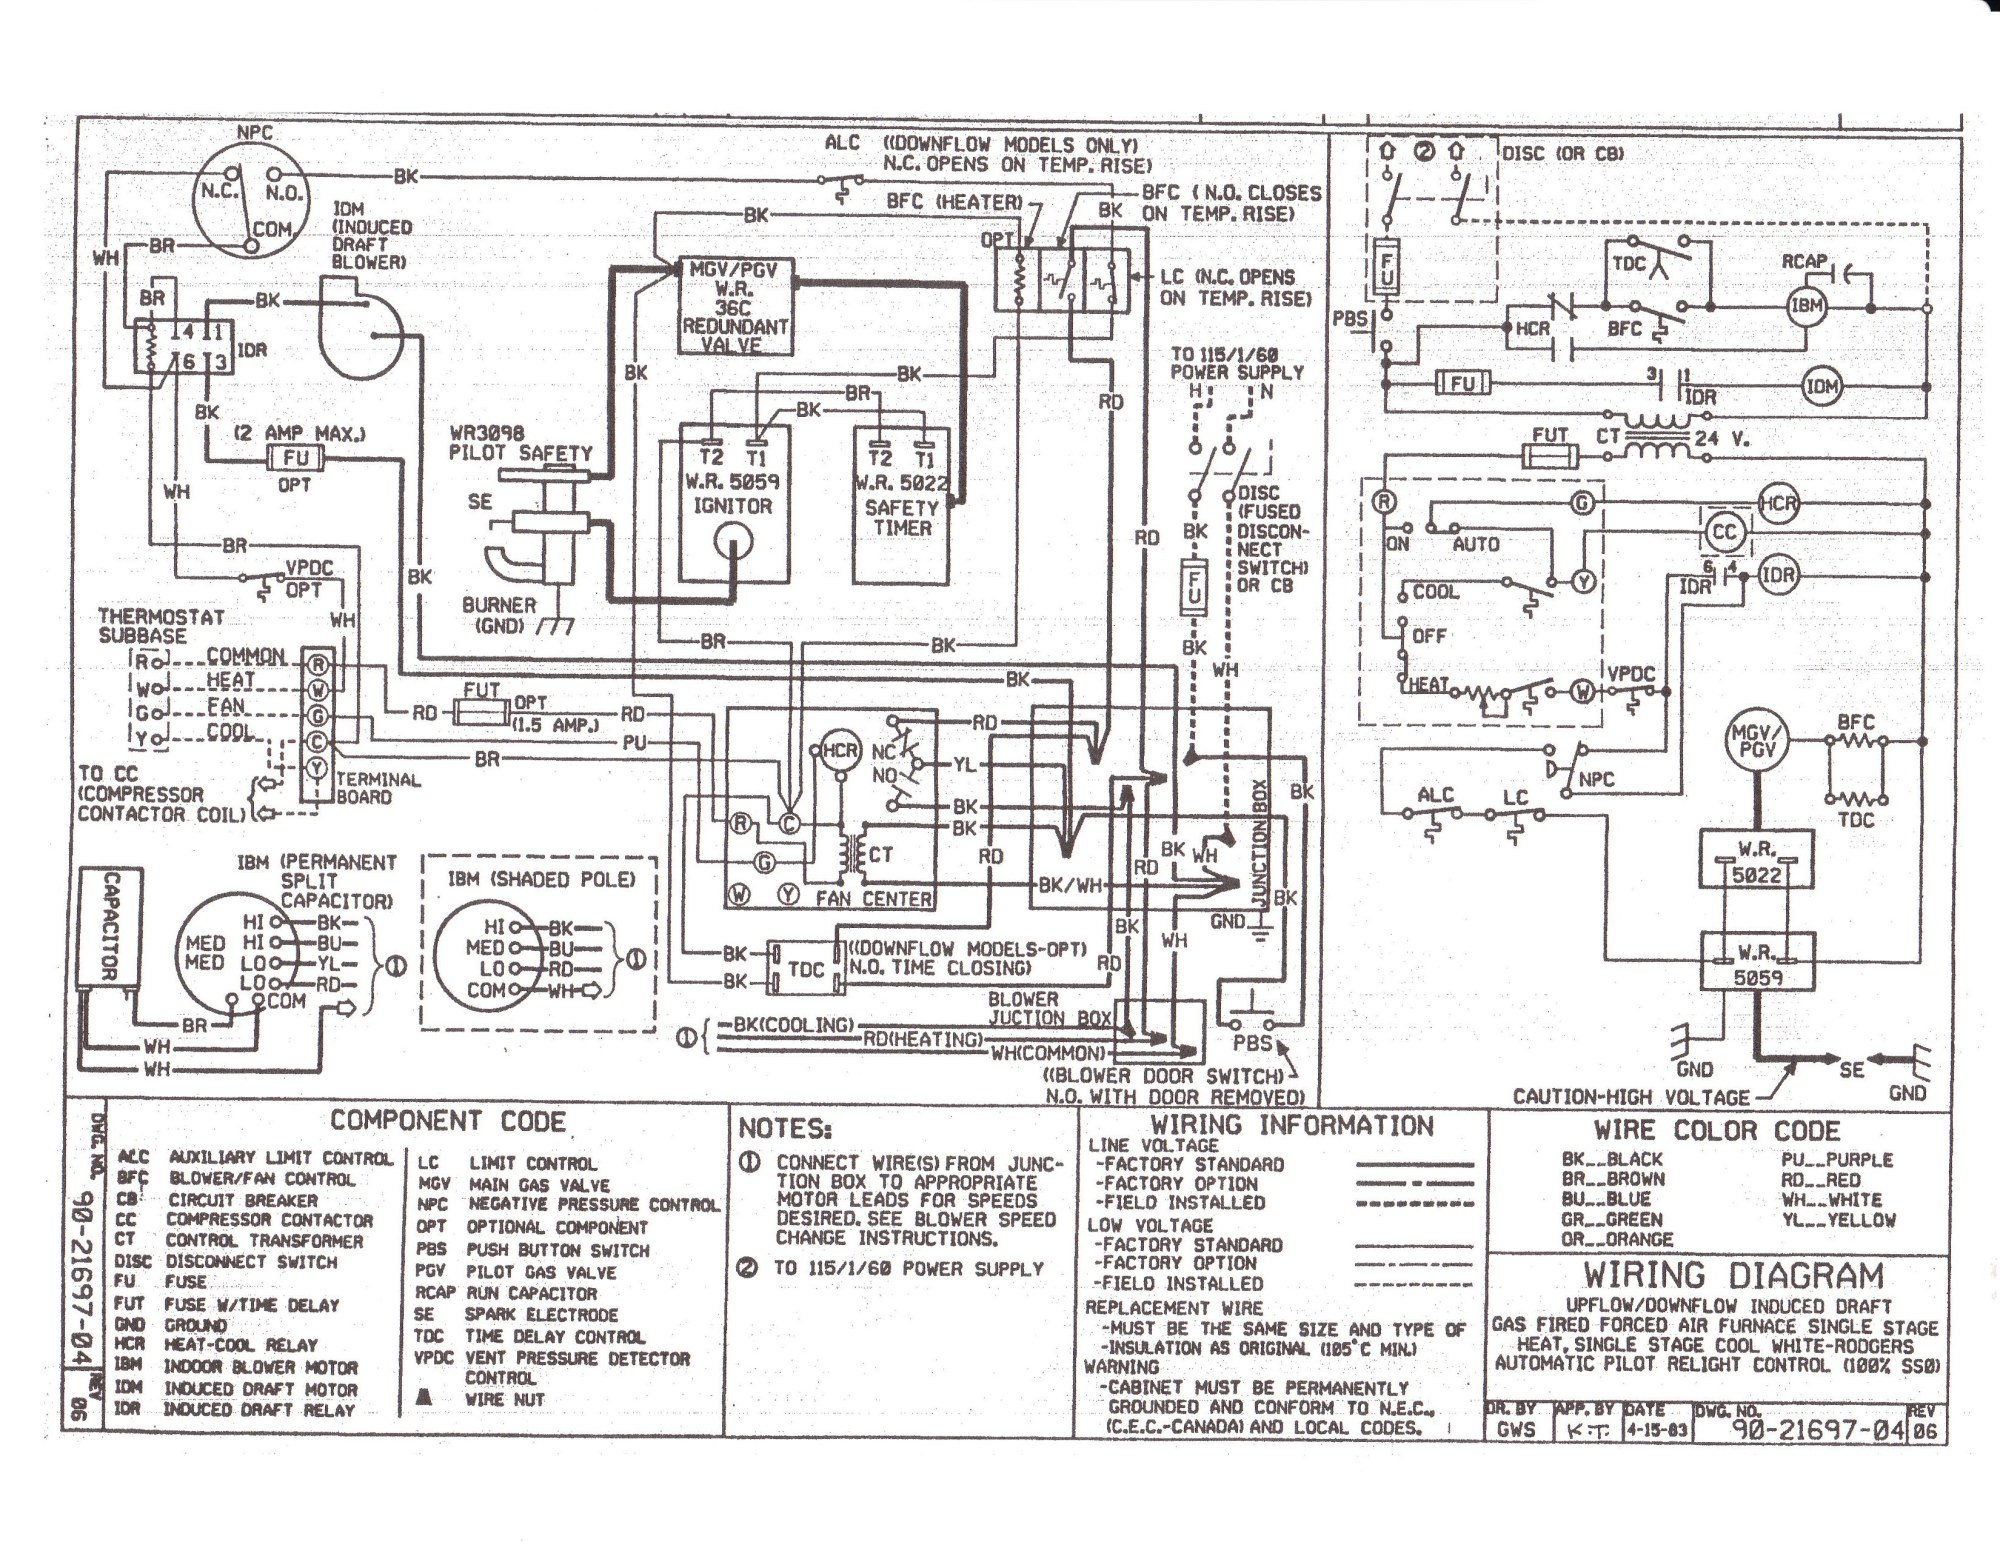 hight resolution of intertherm heat pump wiring diagram nordyne ac wiring diagram save intertherm electric furnace wiring diagram